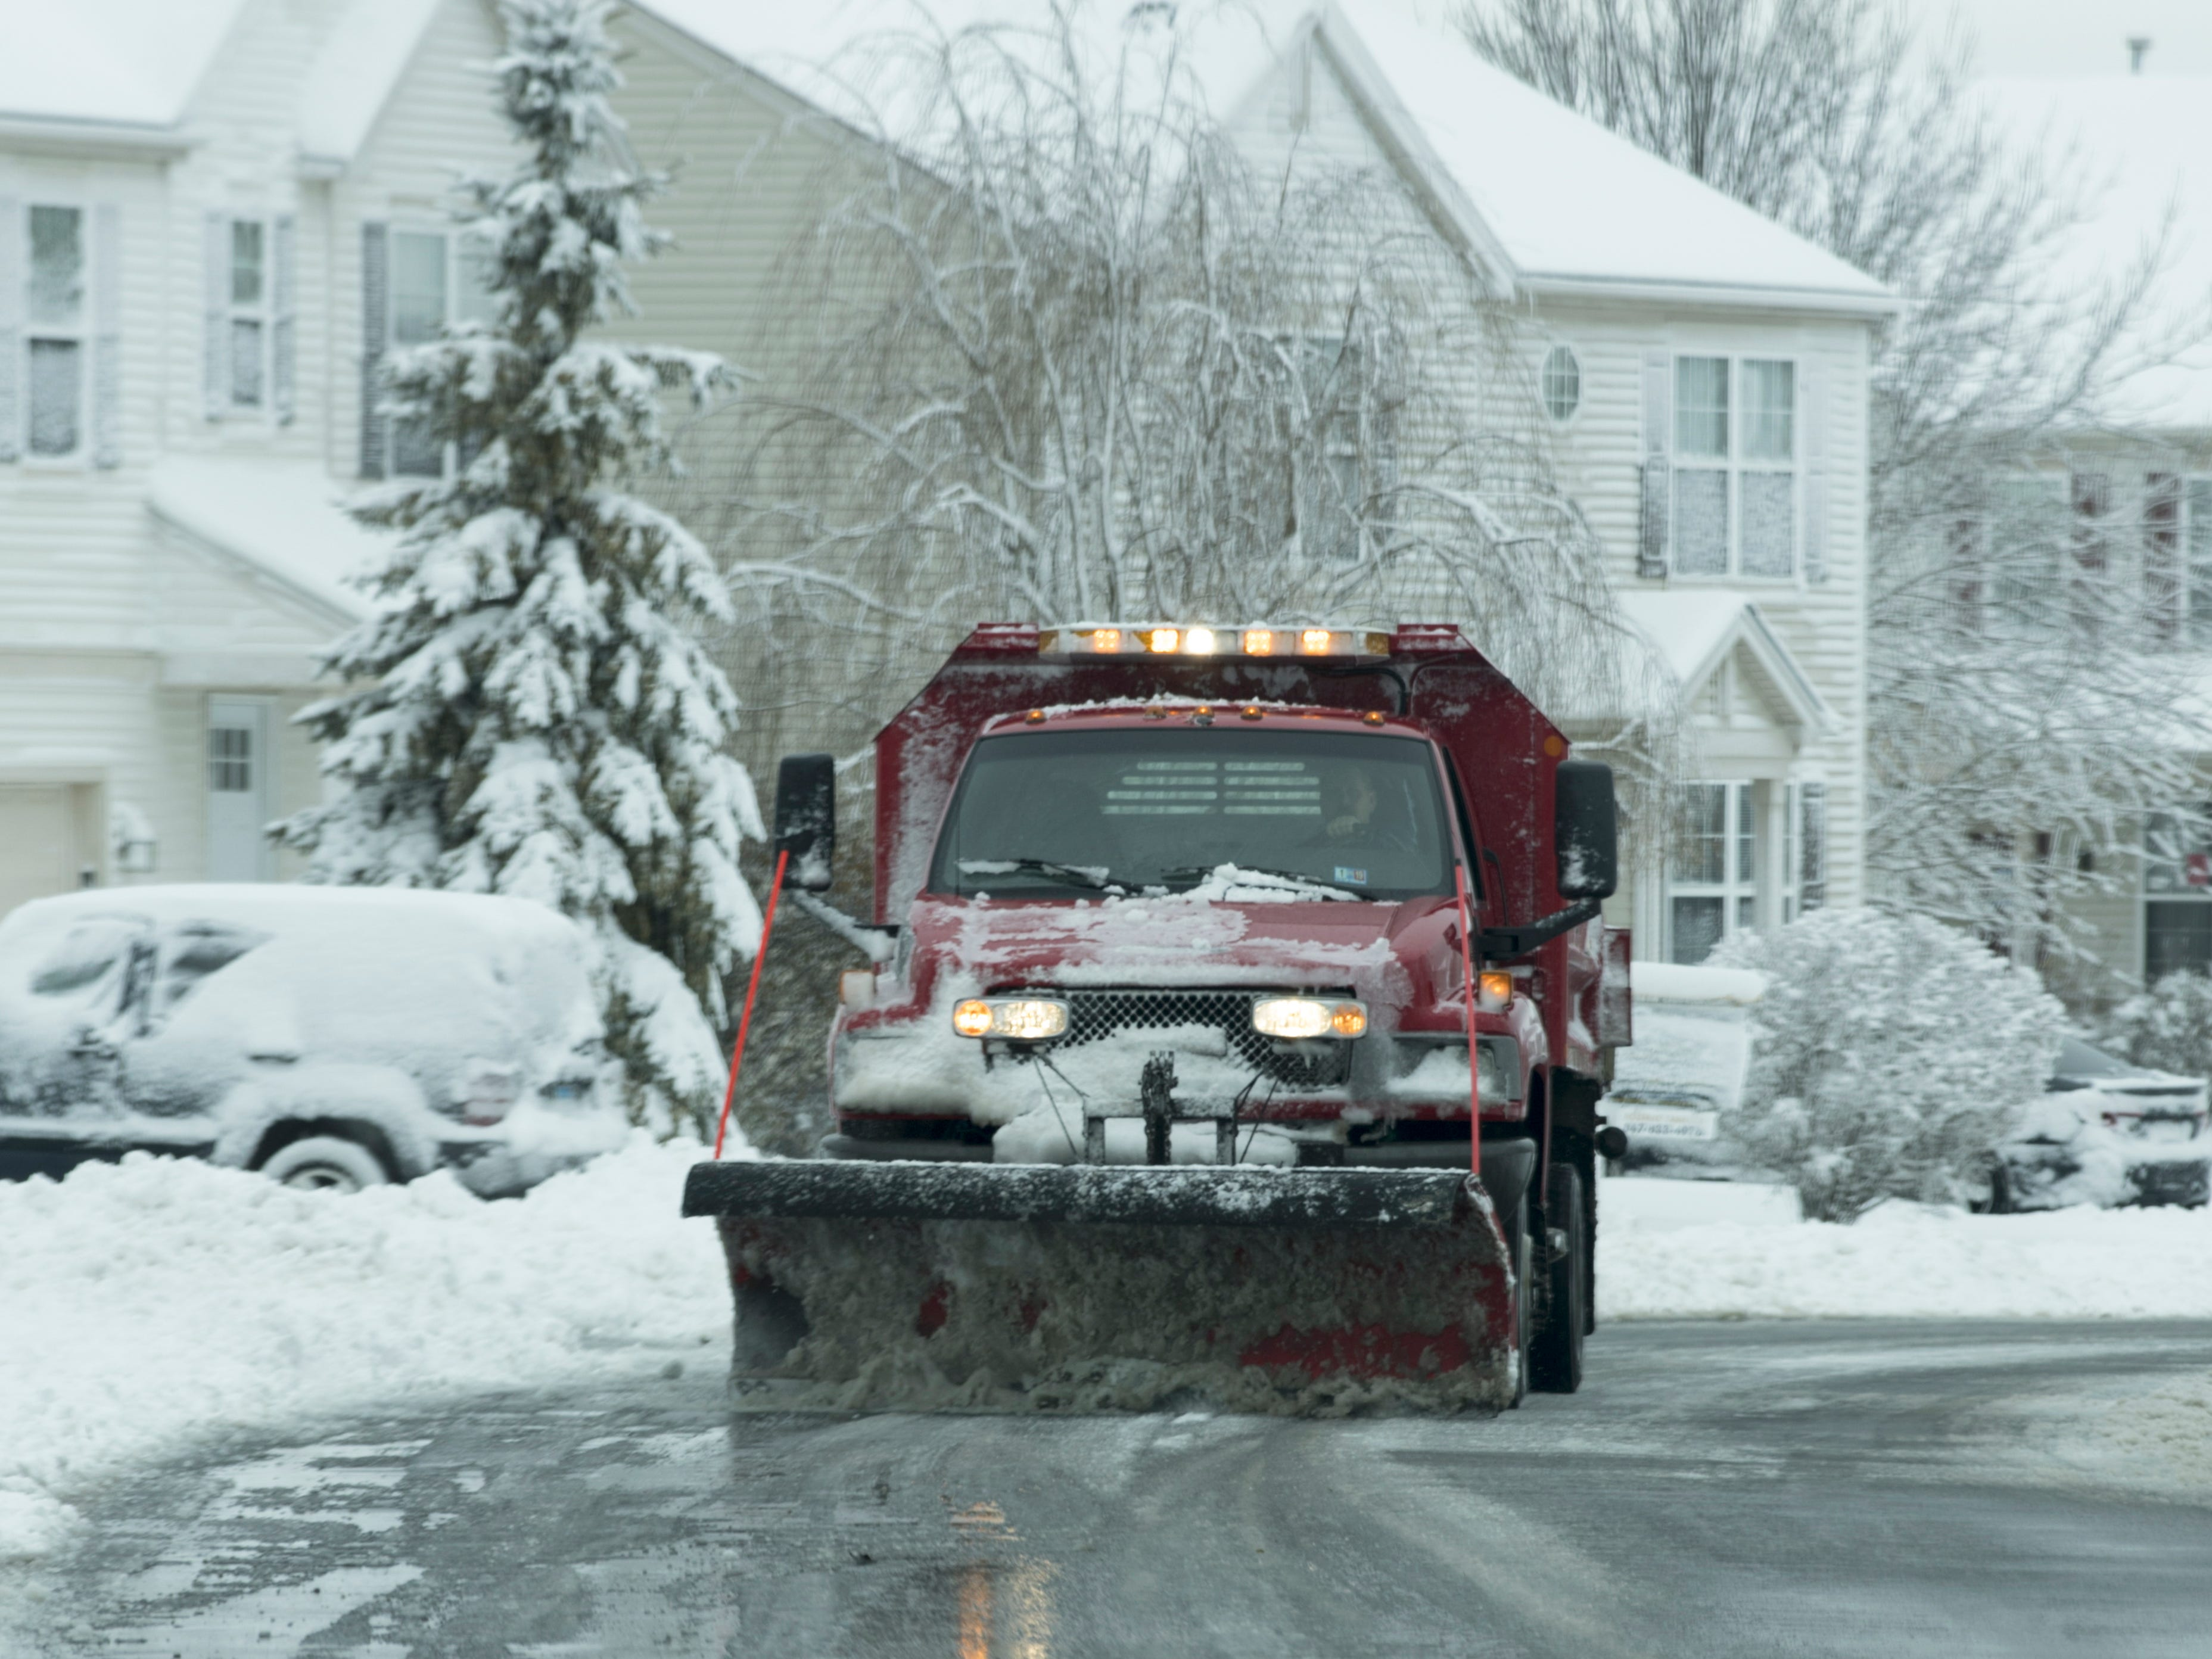 A snow plow clears streets on Nov. 2018, after a winter storm dumped nearly a foot of snow in Round Lake, Ill. The storm left snowy roads, cancelled flights and power outages in its wake as it moves east.